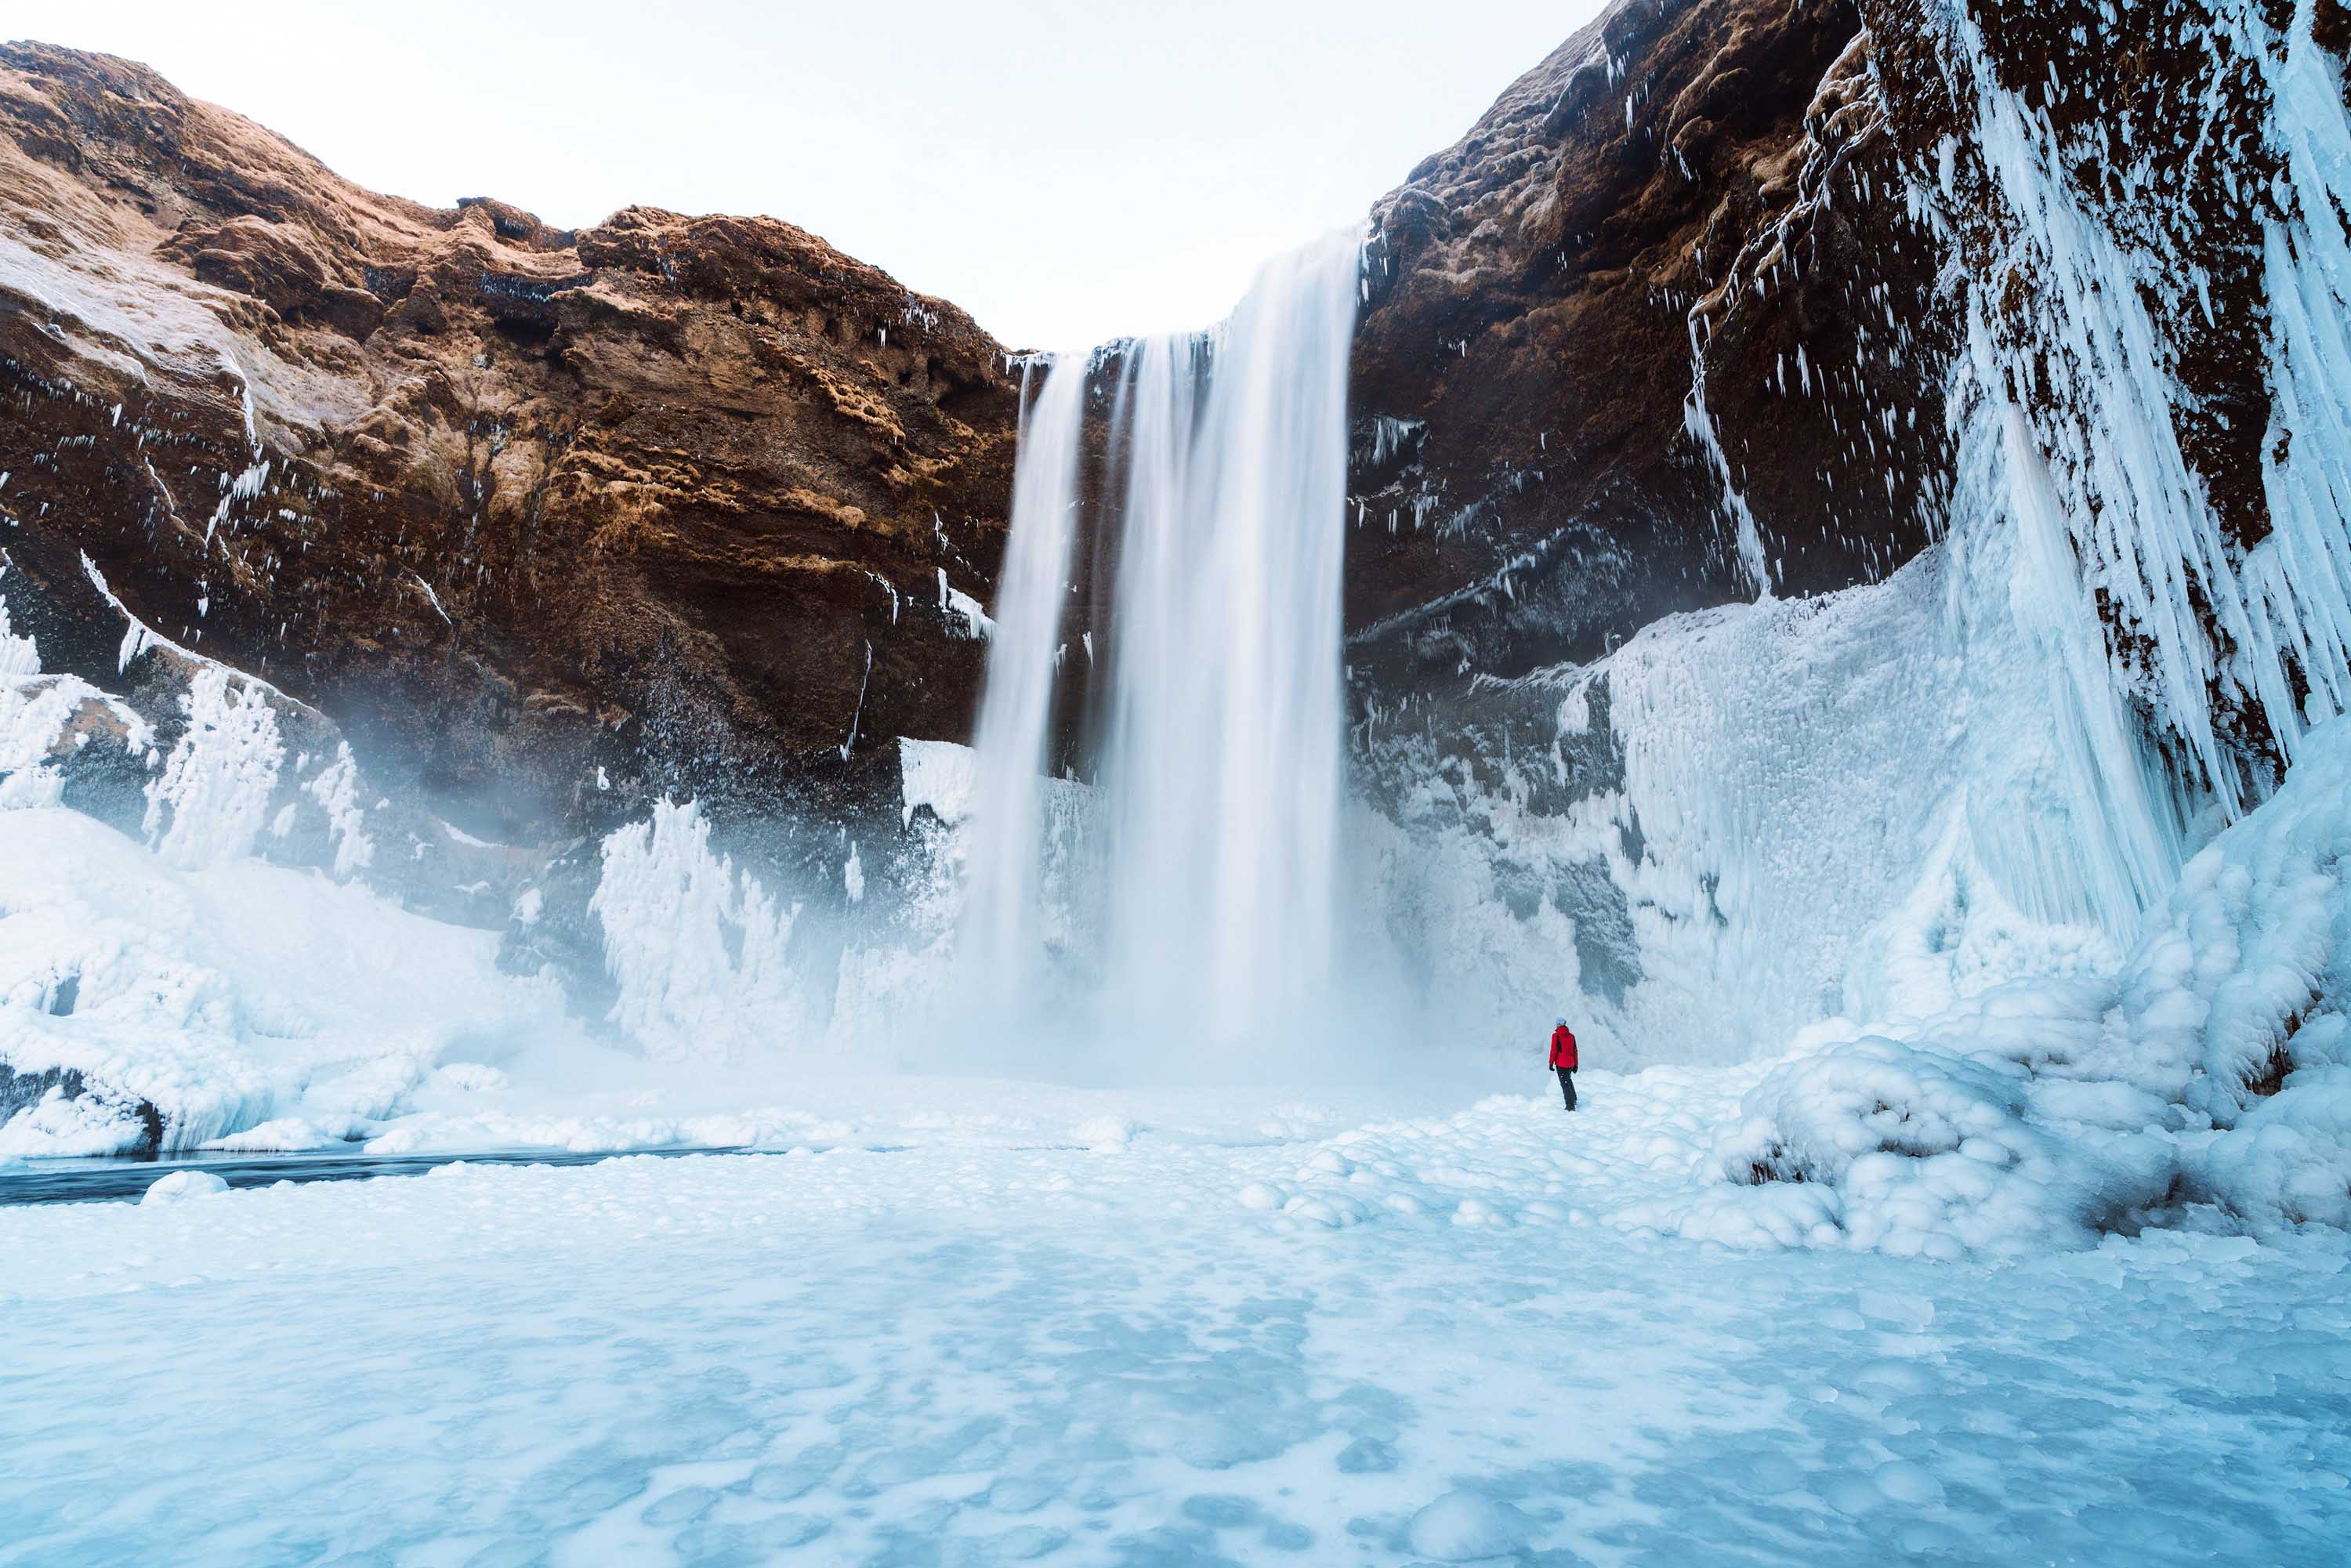 Skogafoss waterfall surrounded by ice and a single person in a red jacket standing far away near the waterfall in Iceland - major stop in 24 hour Iceland itinerary